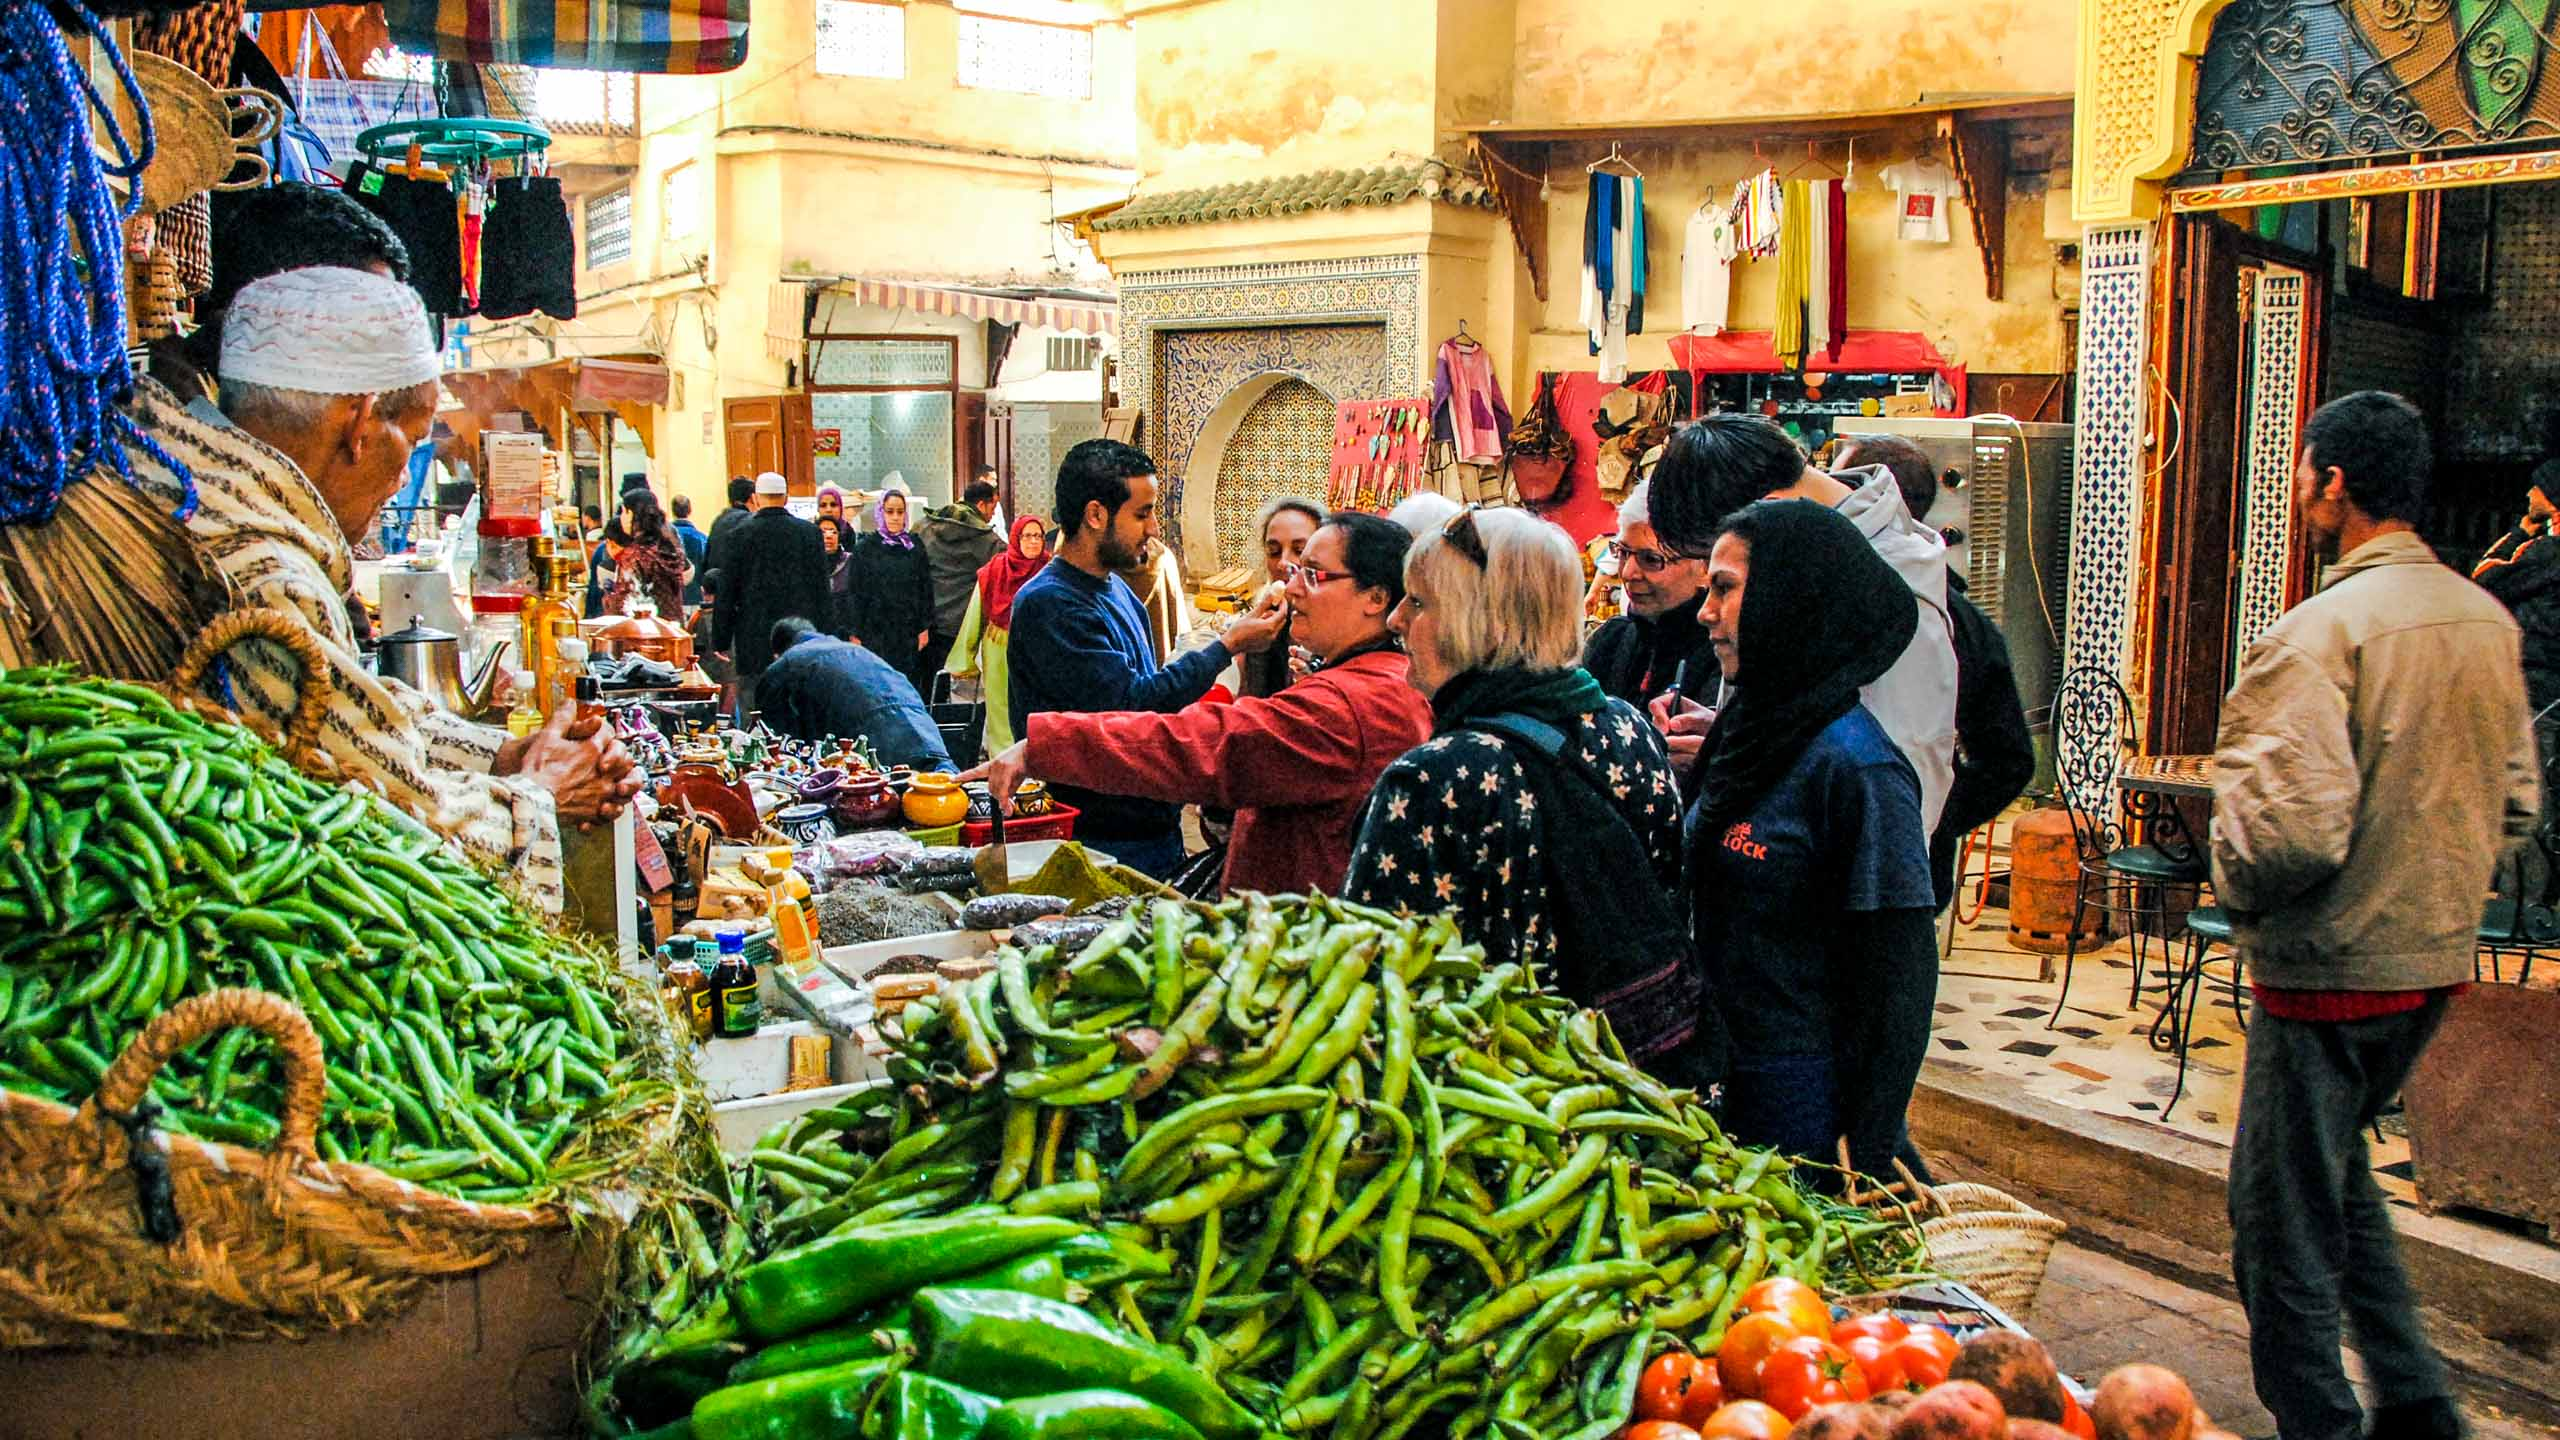 People browsing in Morocco street market